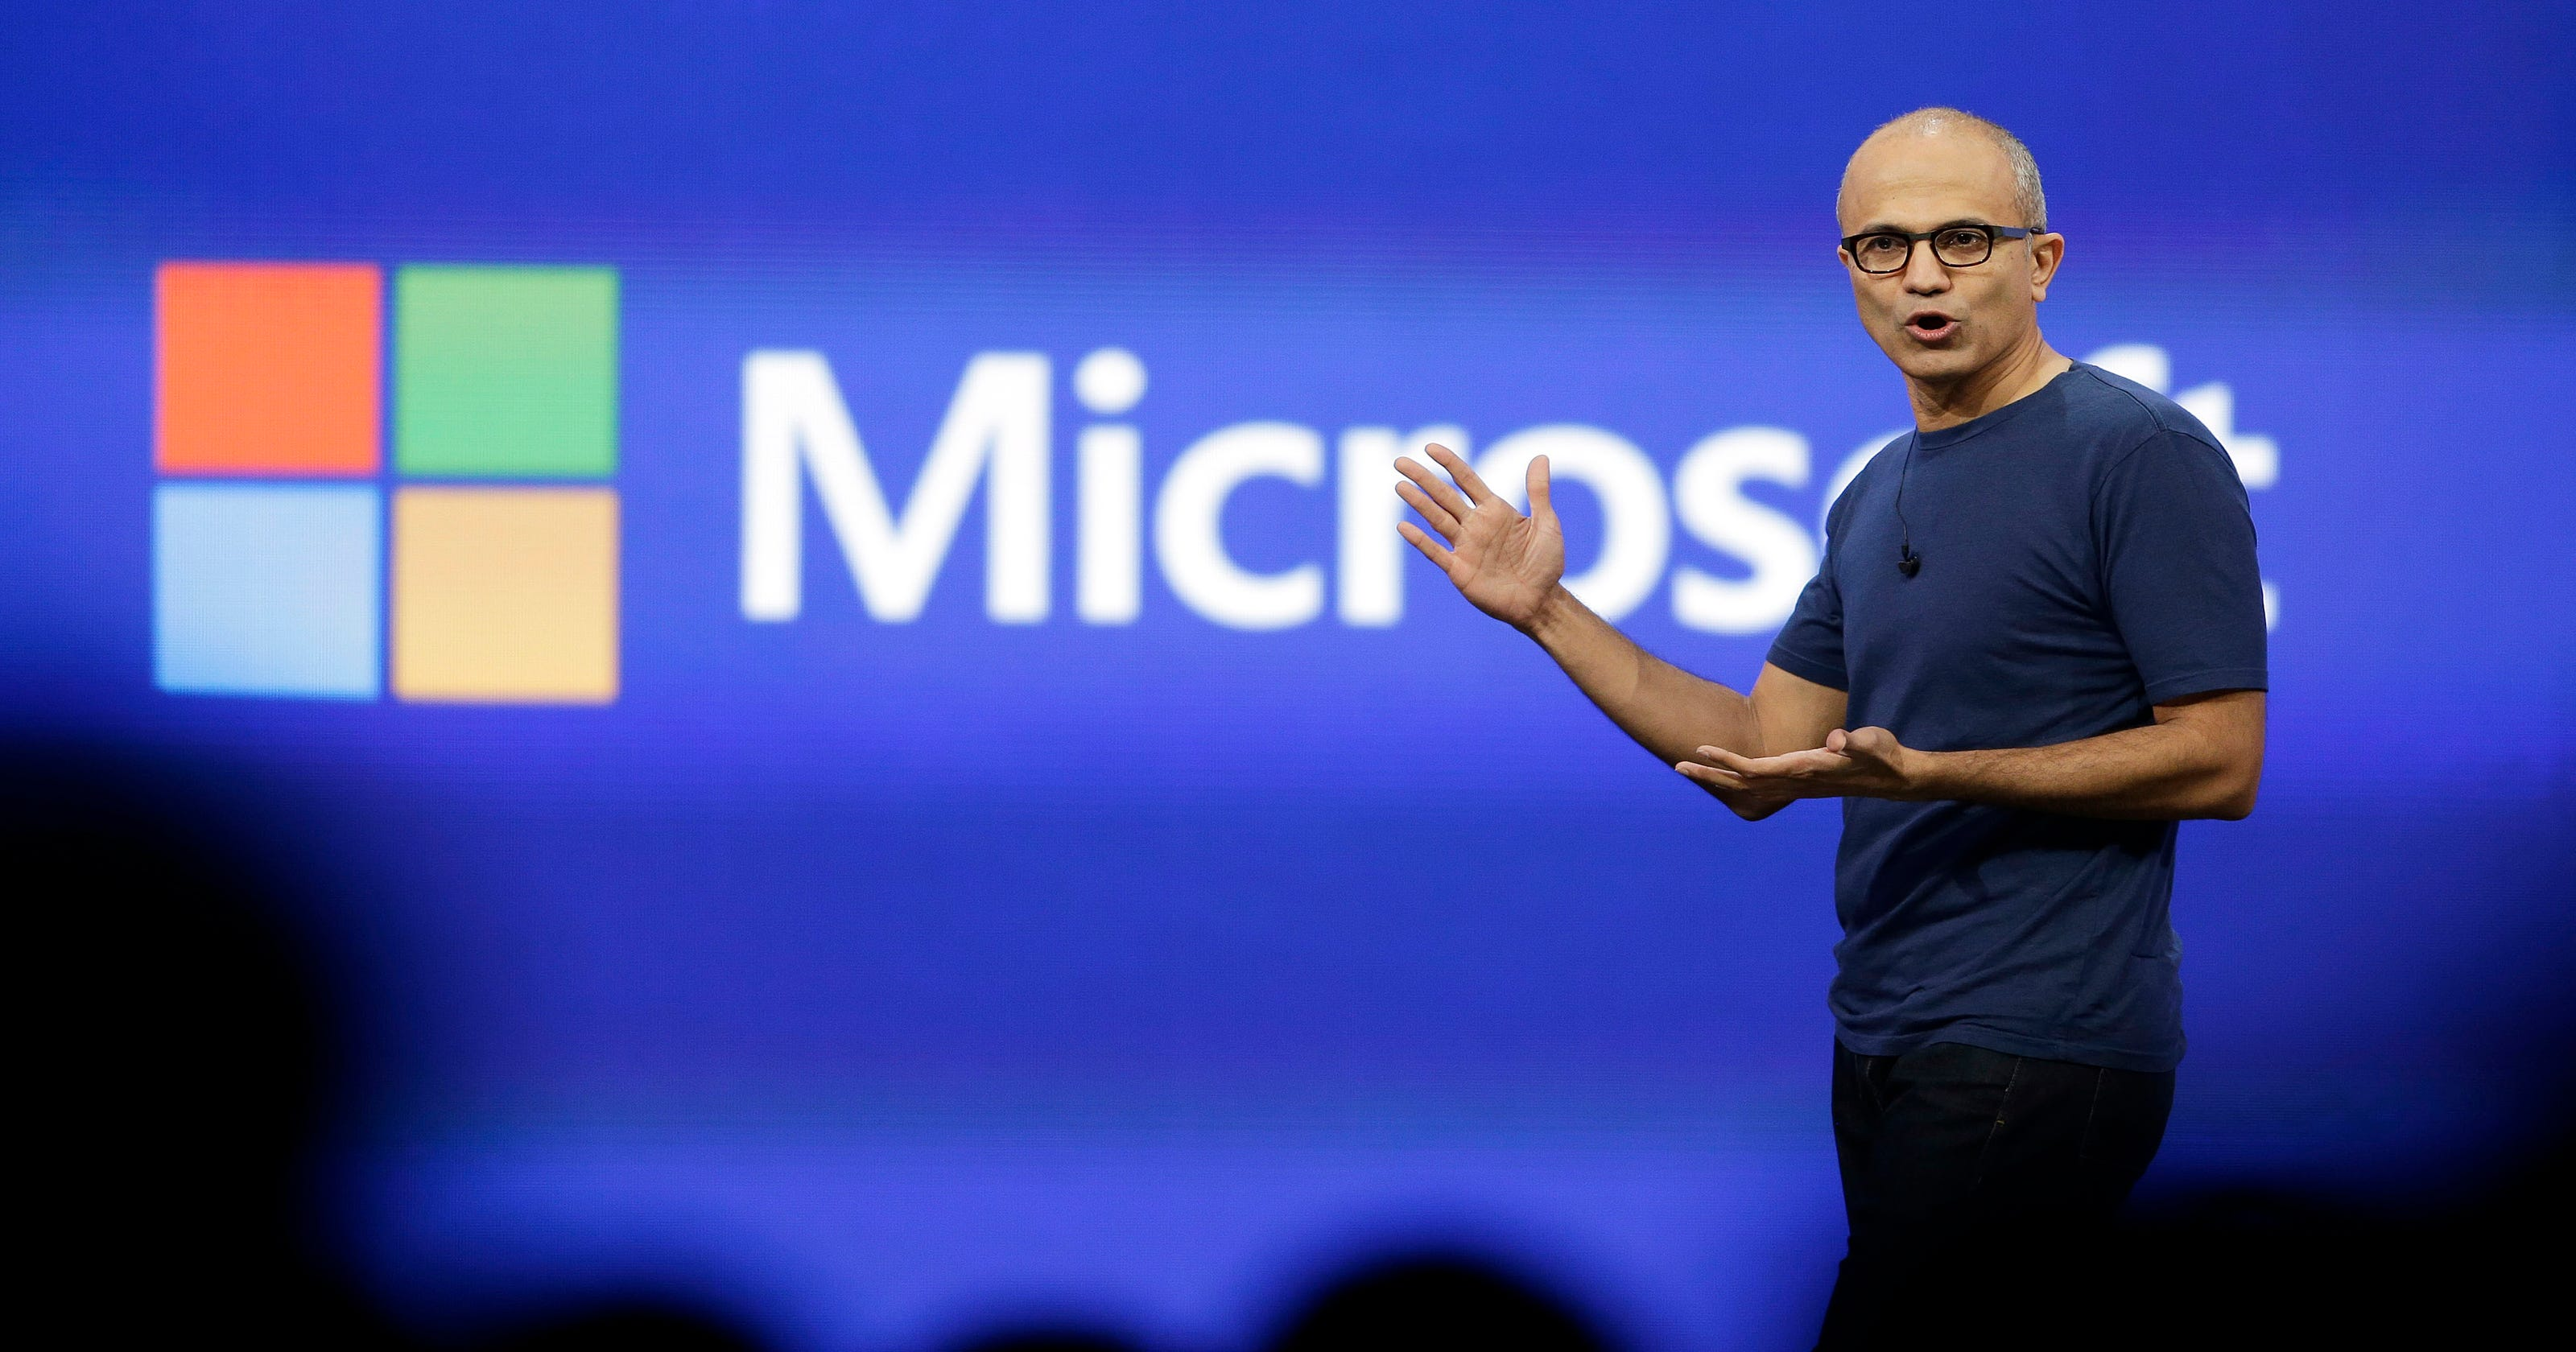 Interview: How Nadella plans to upend Microsoft